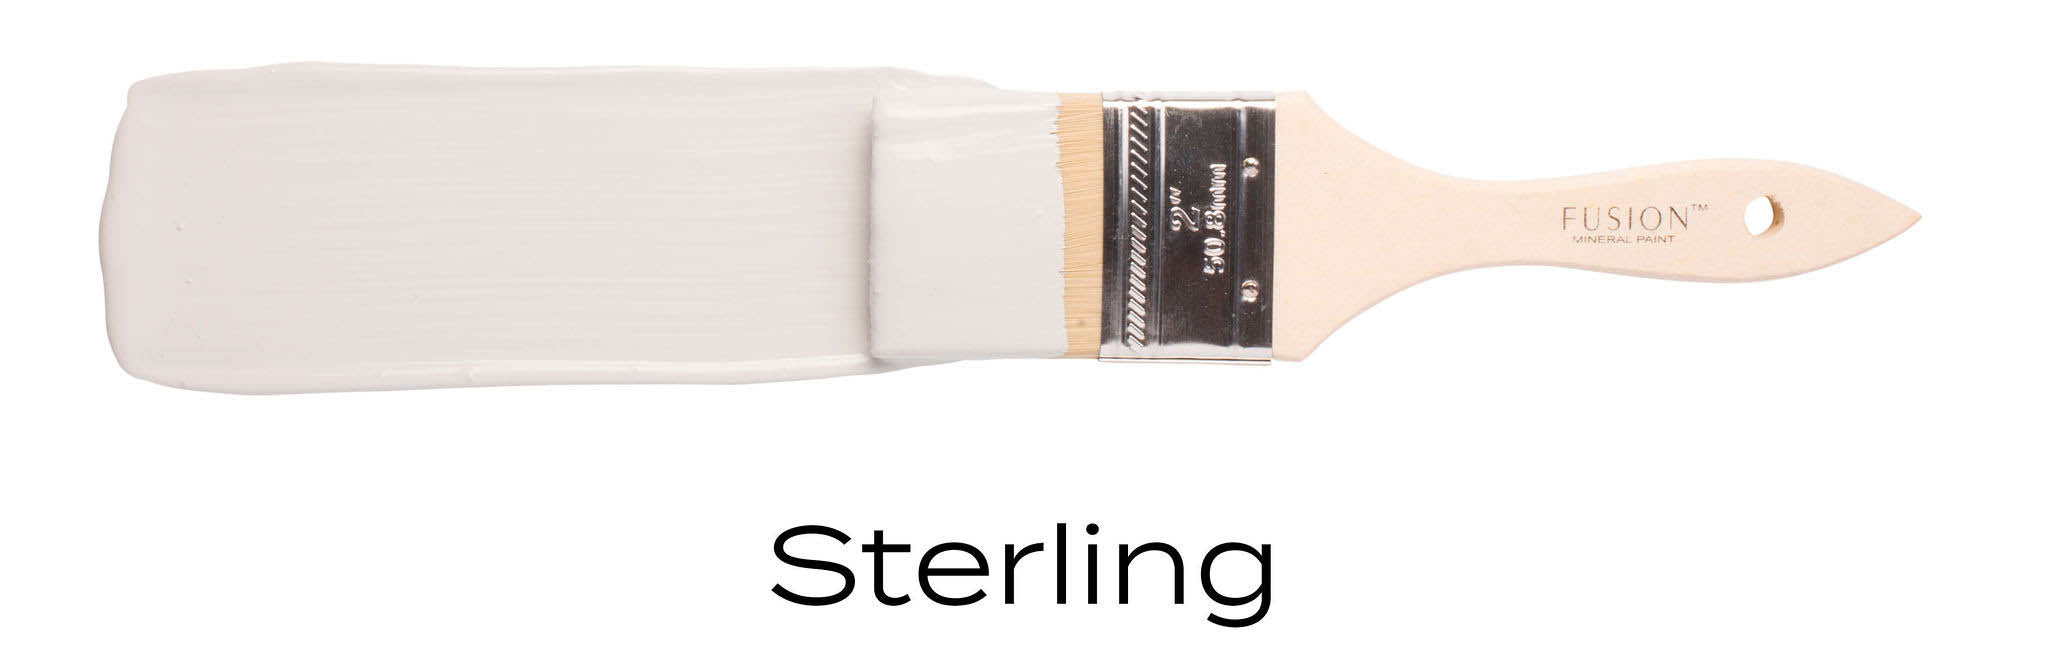 Sterling Fusion Mineral Paint Furniture Paint Colour Example, No Prep or top coat needed, UK Stockist